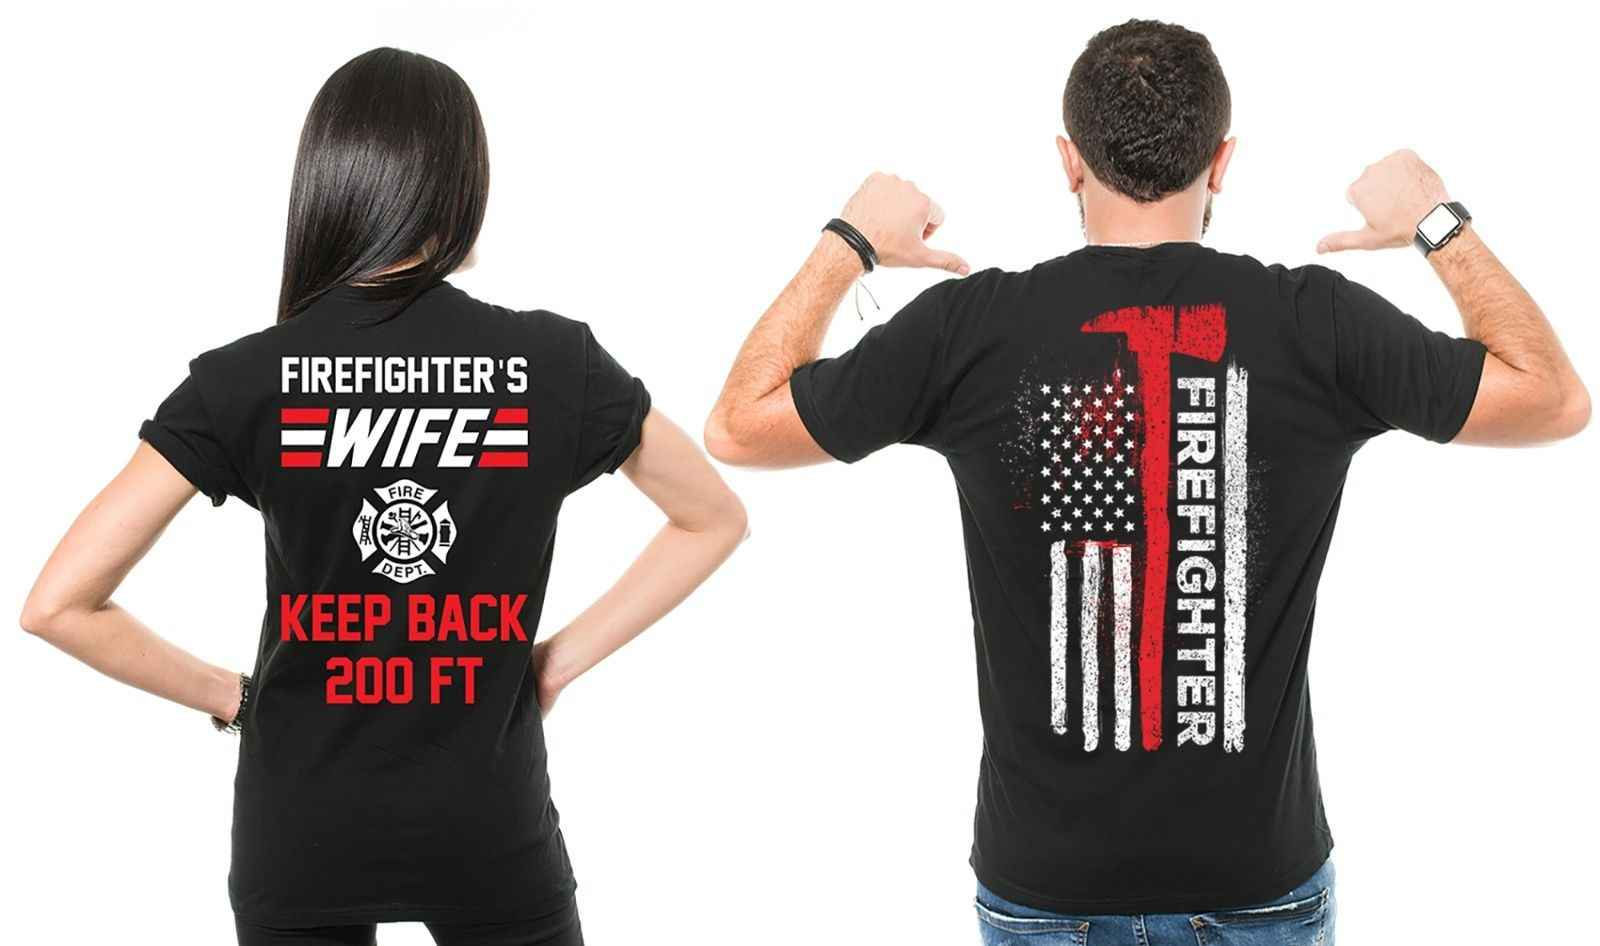 465be5694f Detail Feedback Questions about 2019 Fashion Hot sale 100% cotton  Firefighter Couple T Shirts Husband And Wife Cool Matching T shirts Gift ideas  Tee shirt ...